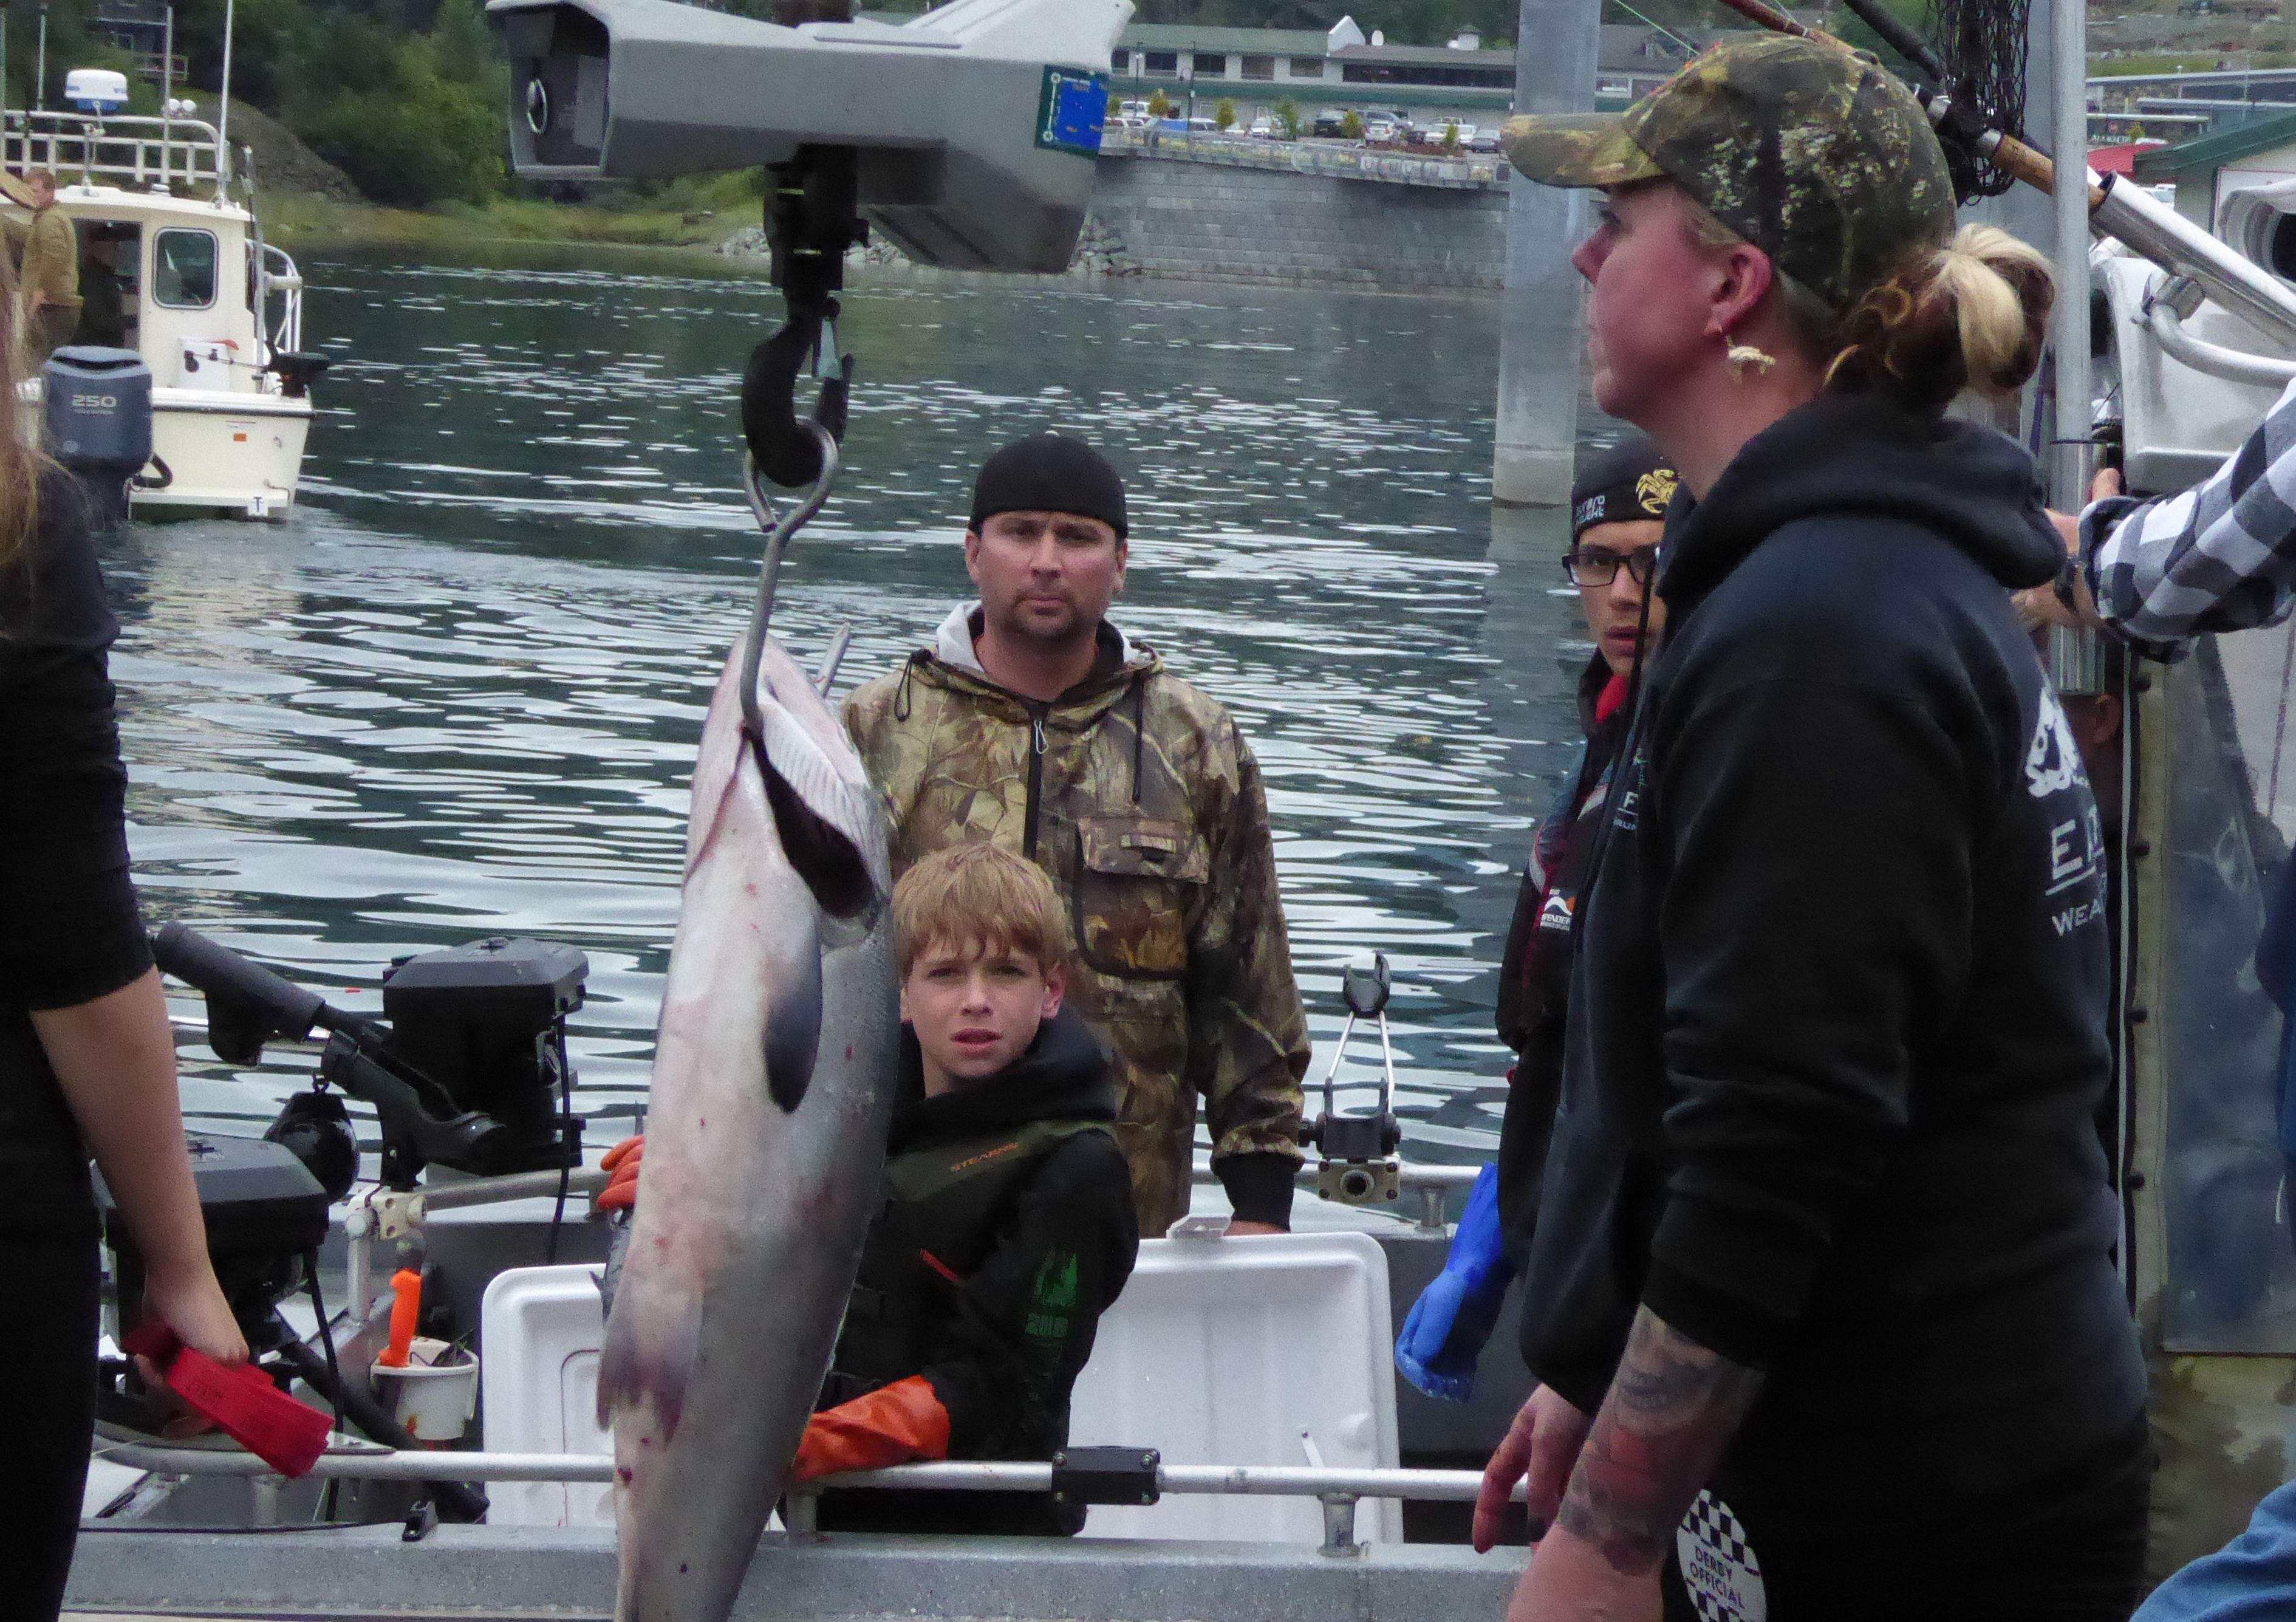 A boy and his father watch from their boat as Kami Bartness weighs their fish on a hanging scale at the Auke Bay harbor.